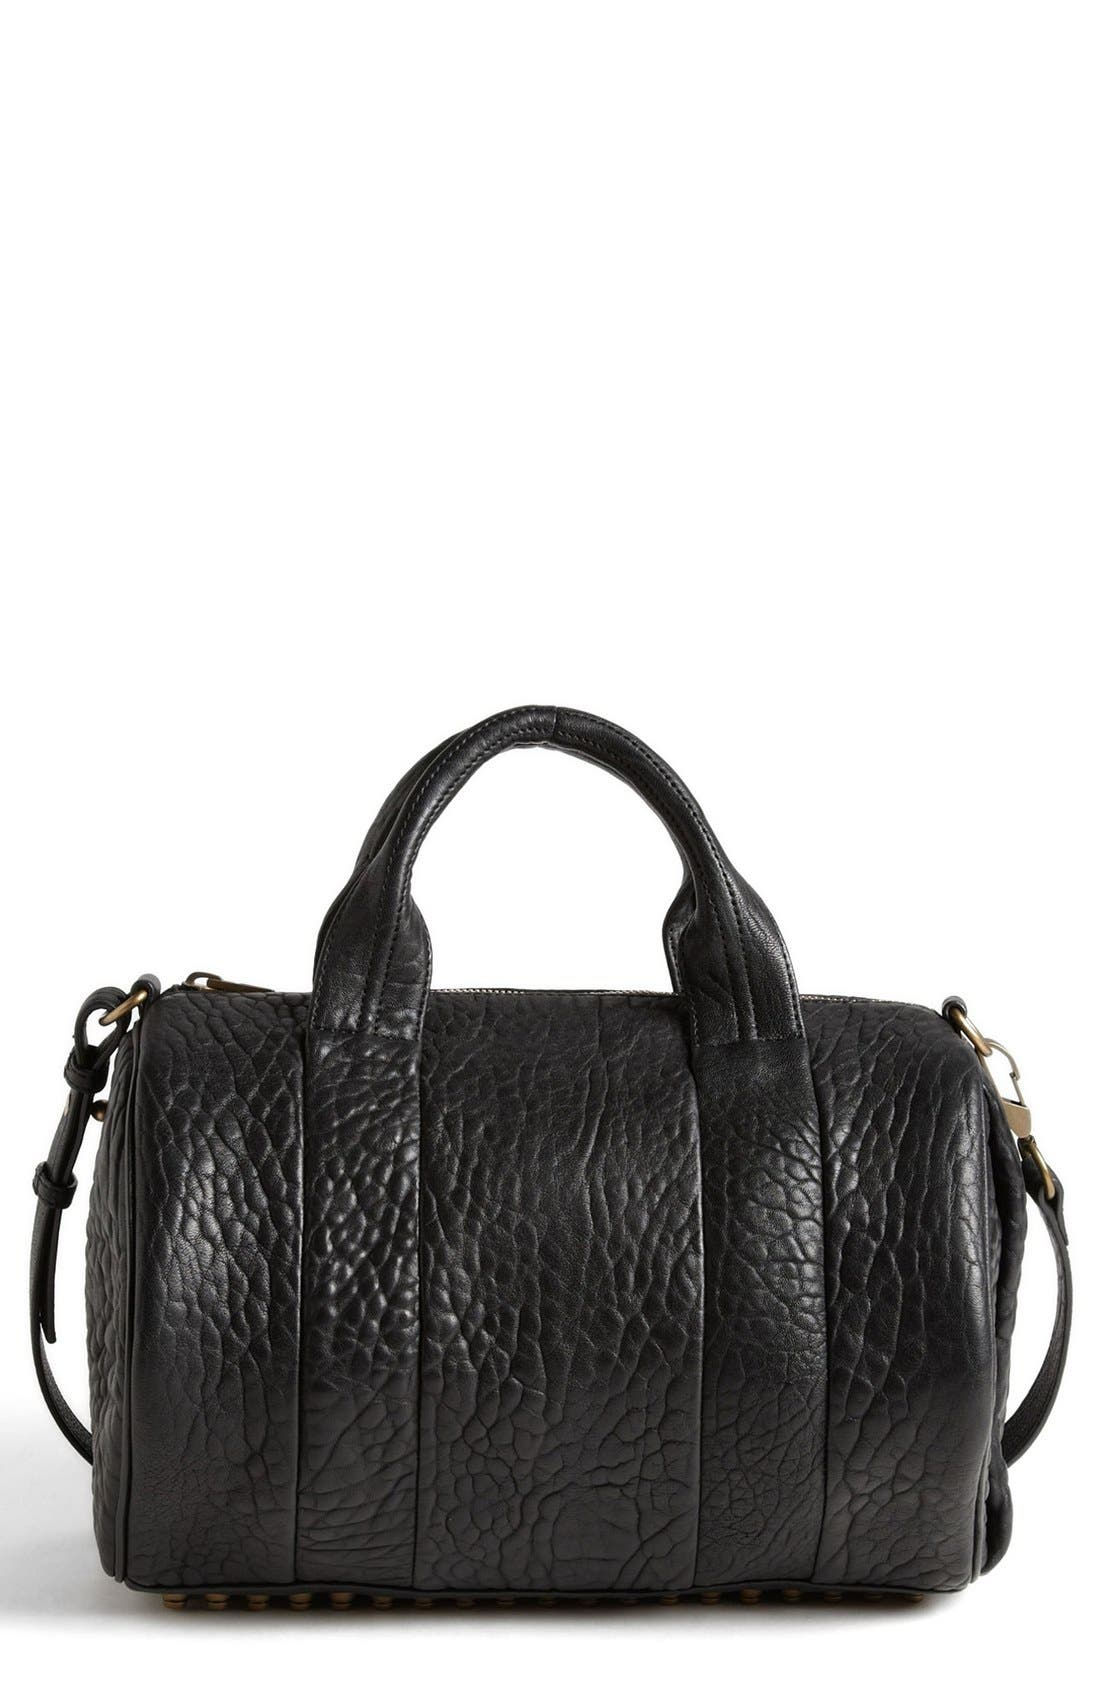 Alternate Image 1 Selected - Alexander Wang 'Rocco - Antique Brass' Leather Satchel